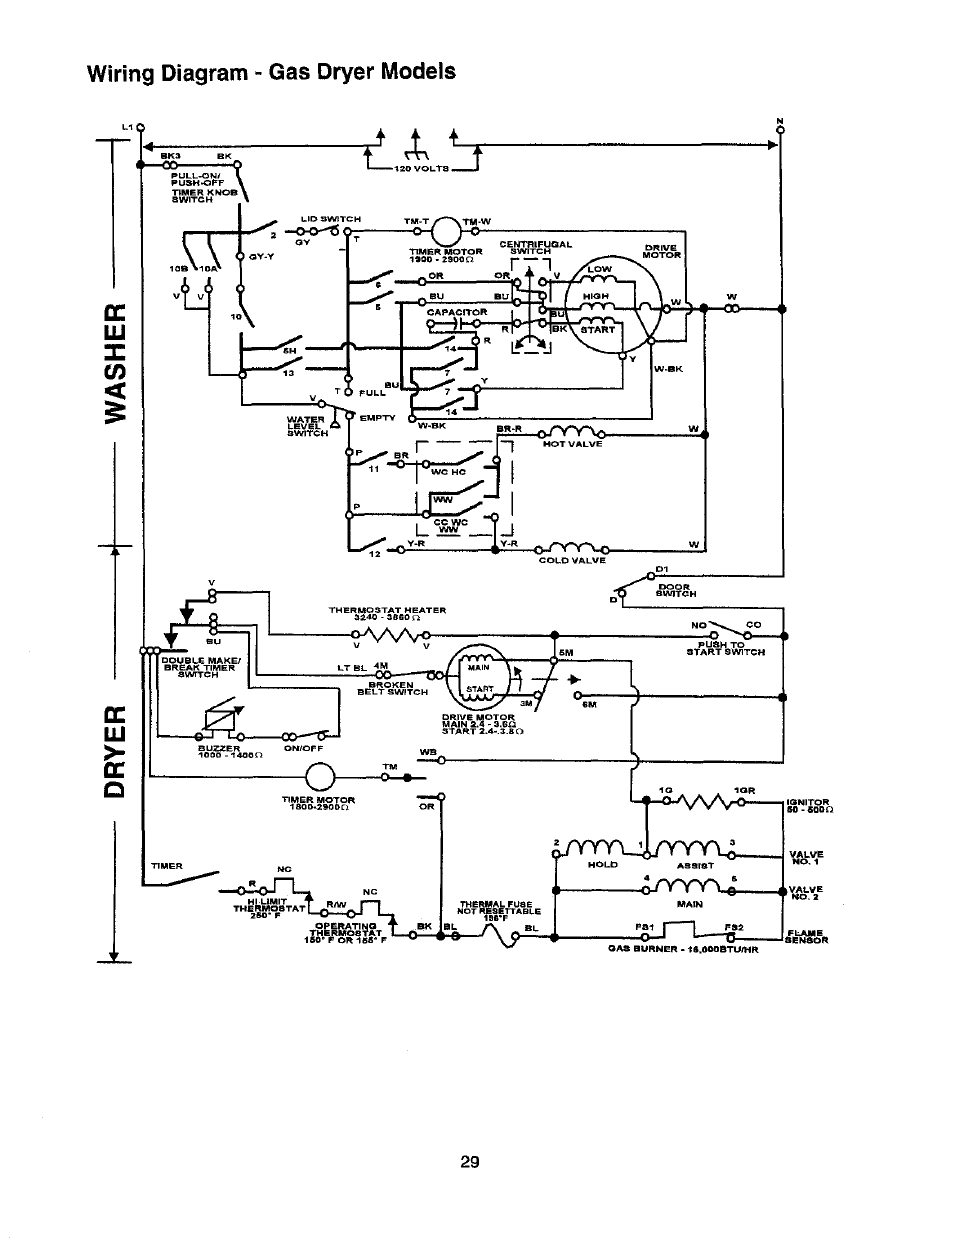 Wiring Diagram For Whirlpool Free You 120 240 Volt Rv Get Image About Gas Dryer Models Thin Twin User Manual Rh Manualsdir Com